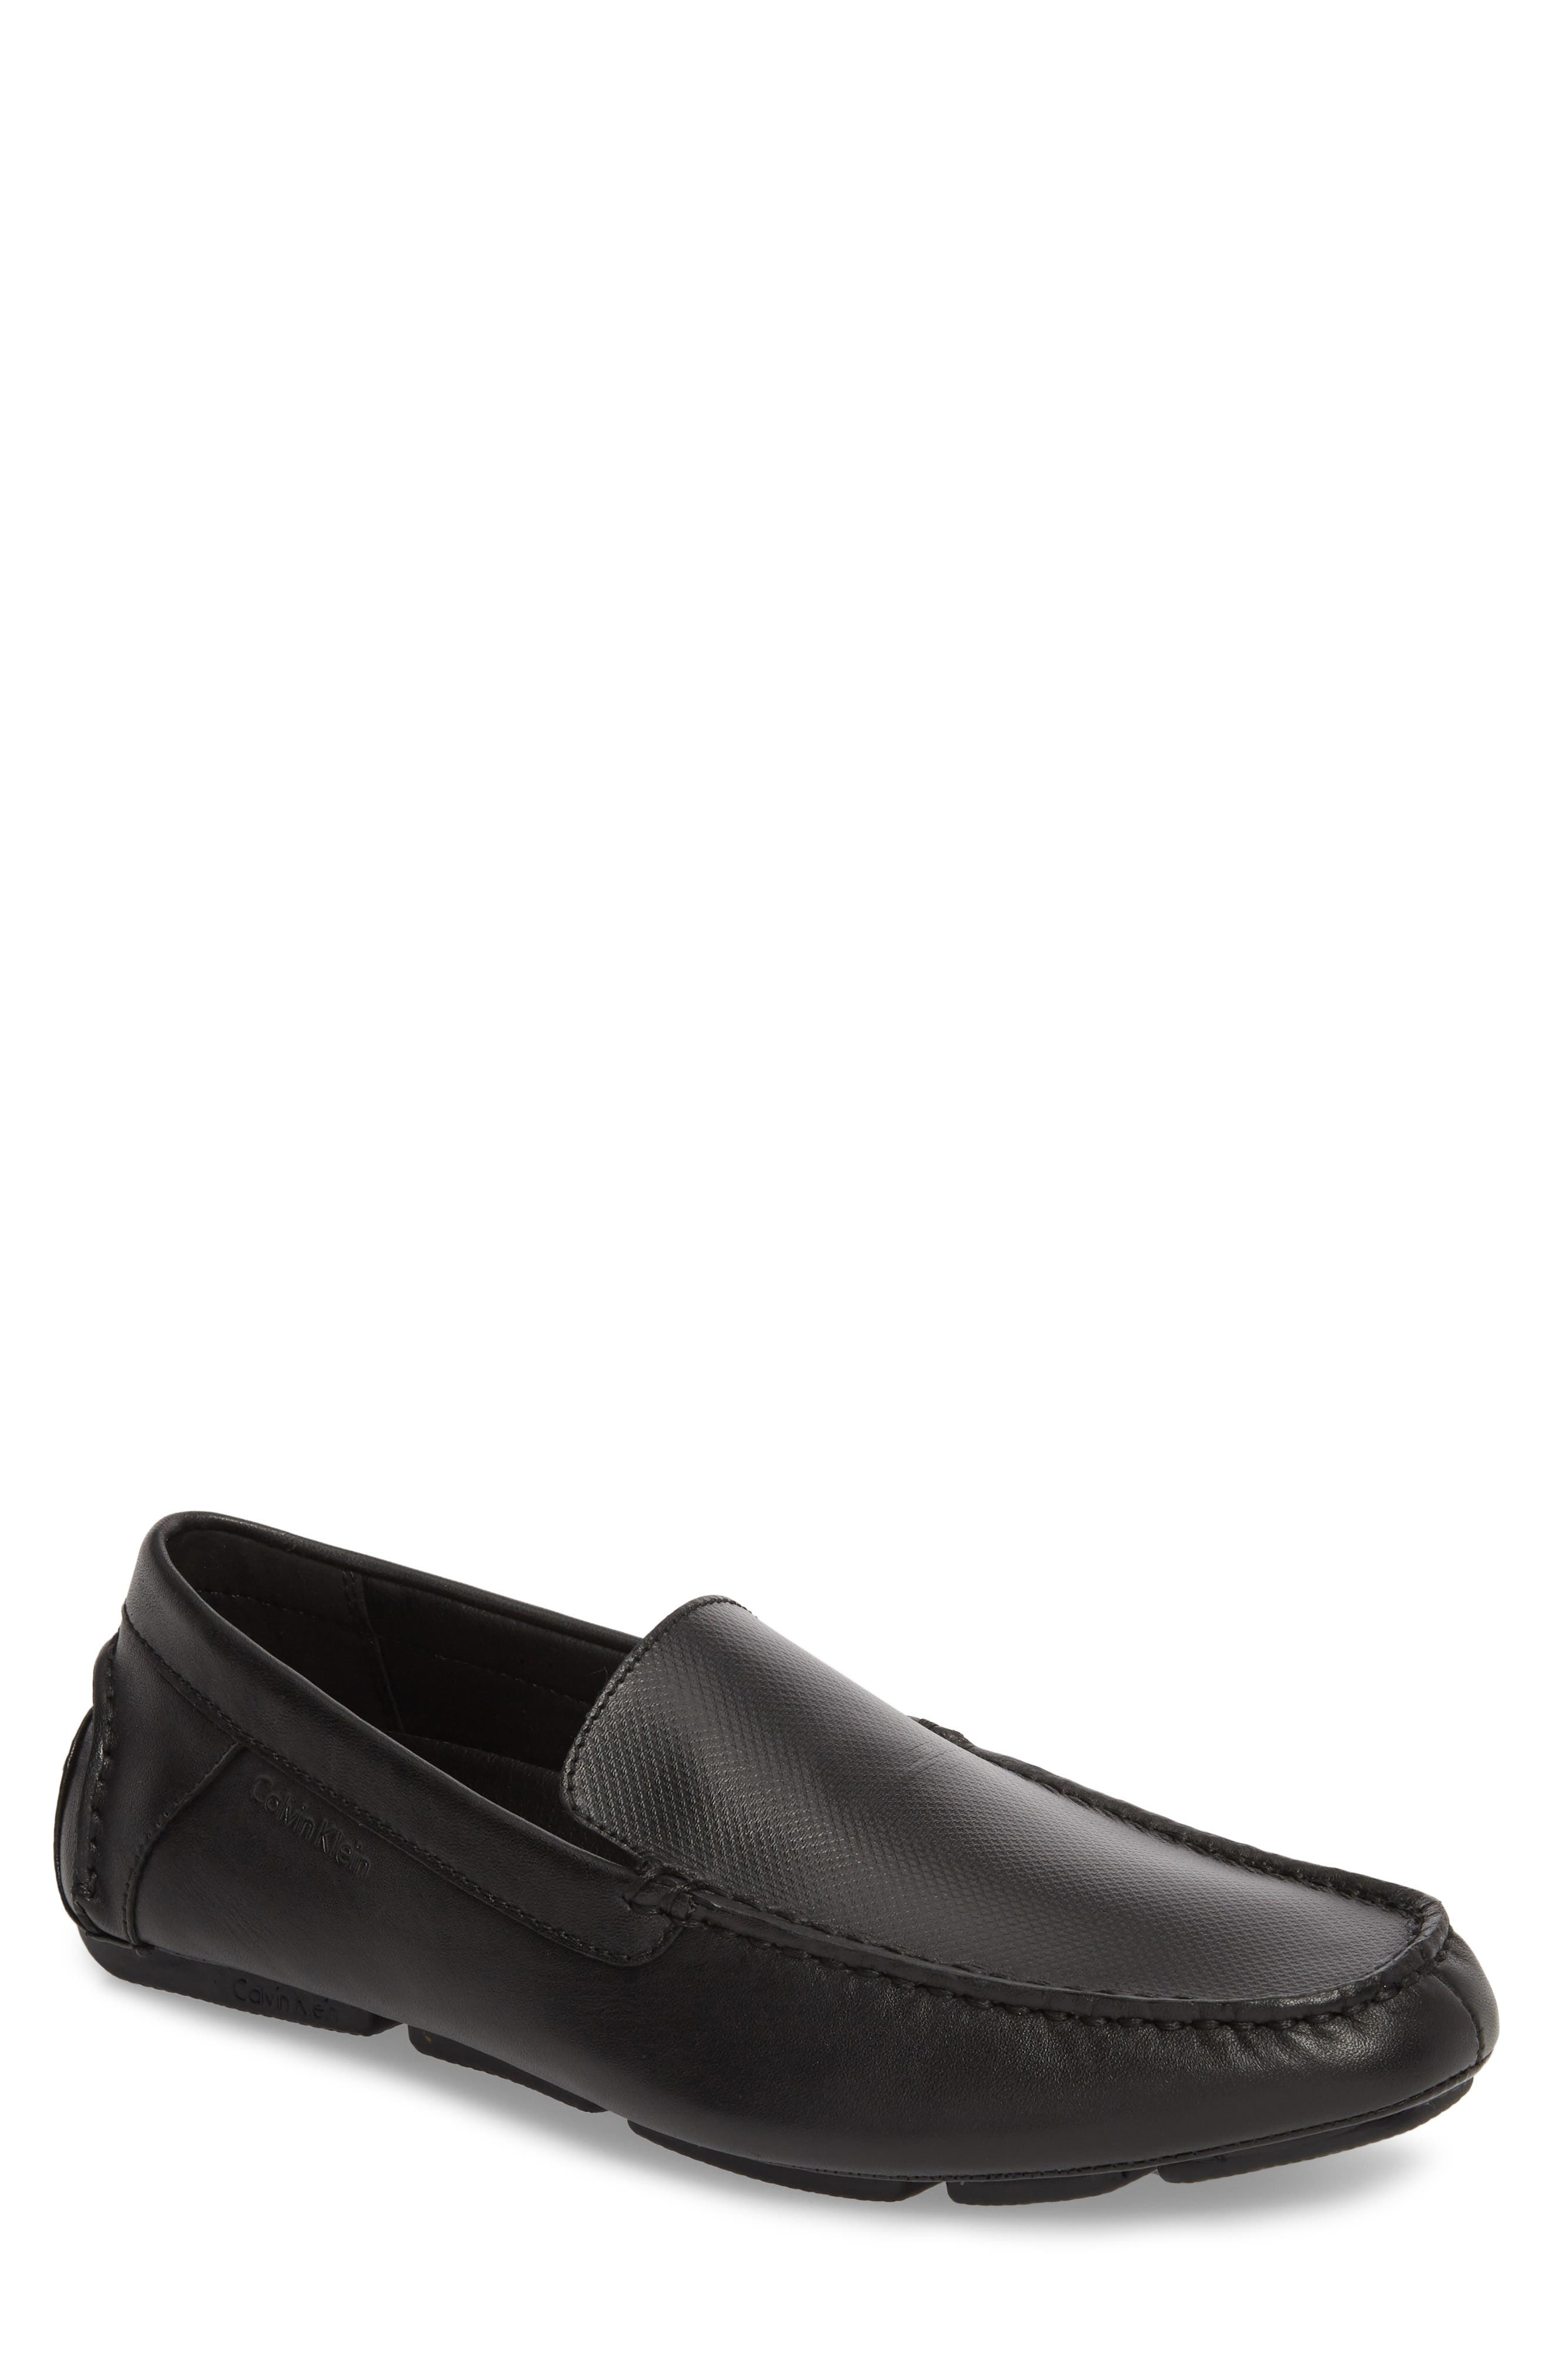 Miguel Textured Driving Loafer,                             Main thumbnail 1, color,                             001